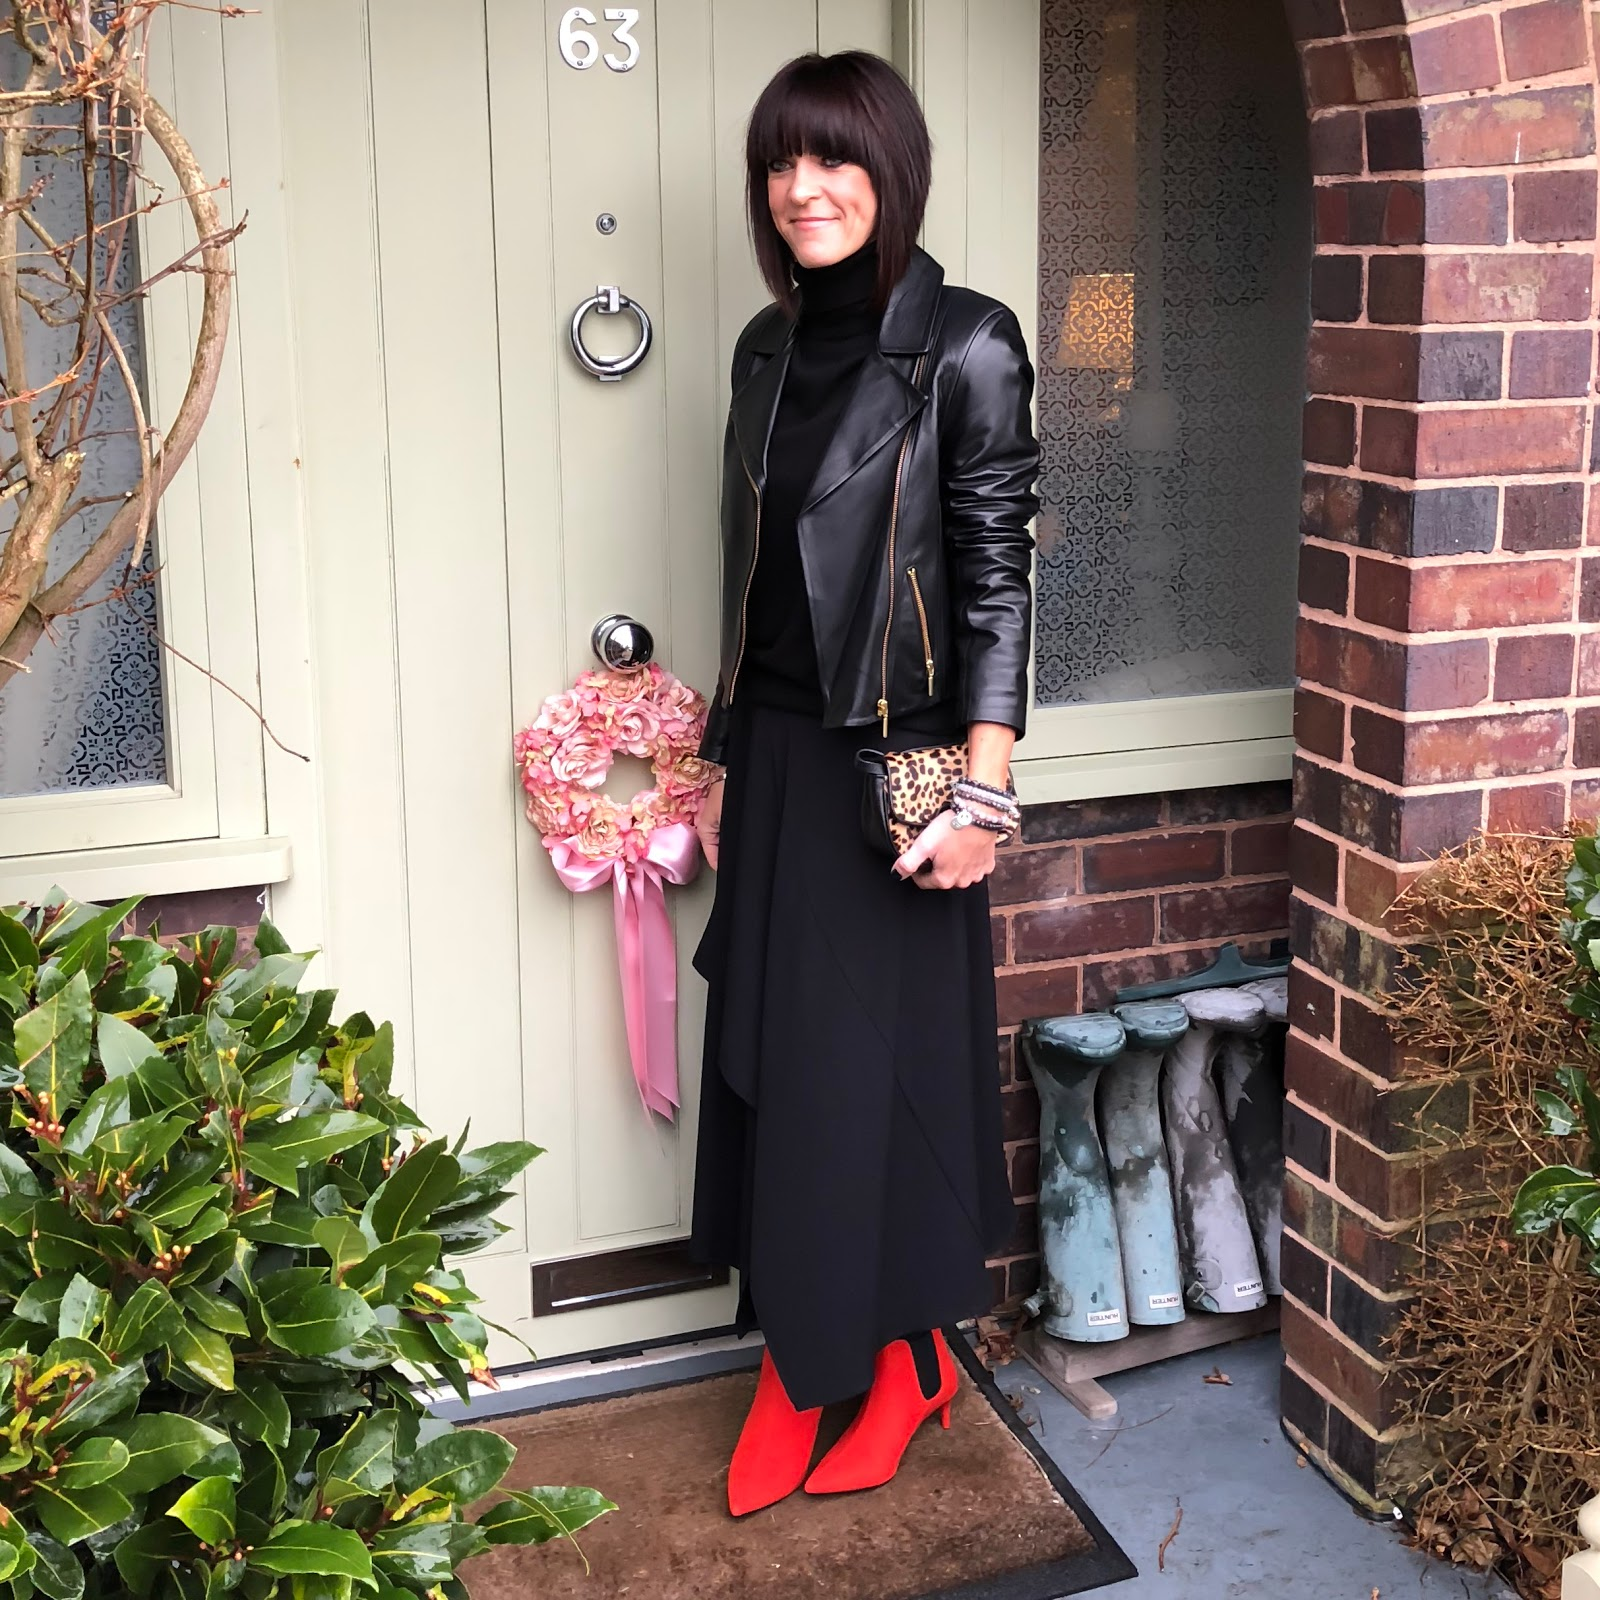 my midlife fashion, j crew leopard print bag, marks and spencer kitten heel pointed toe ankle boots, marks and spencer asymmetric panel detail midi skirt, marks and spencer pure cashmere roll neck sweater, baukjen leather everyday biker jacket